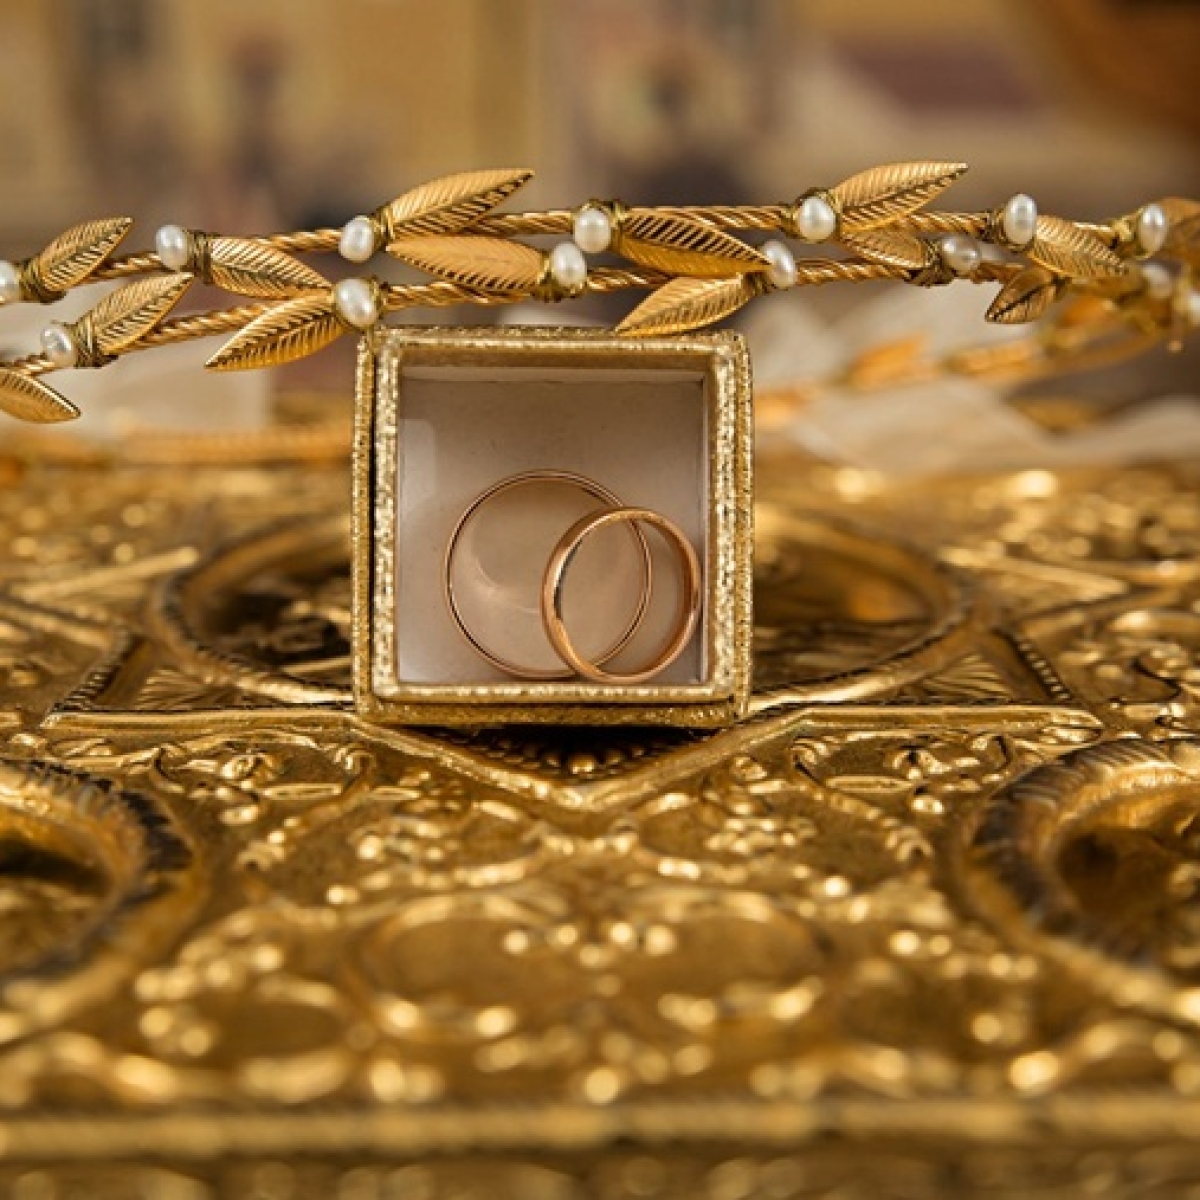 Gold prices rise marginally to Rs 42,446 per 10 gram despite coronavirus news